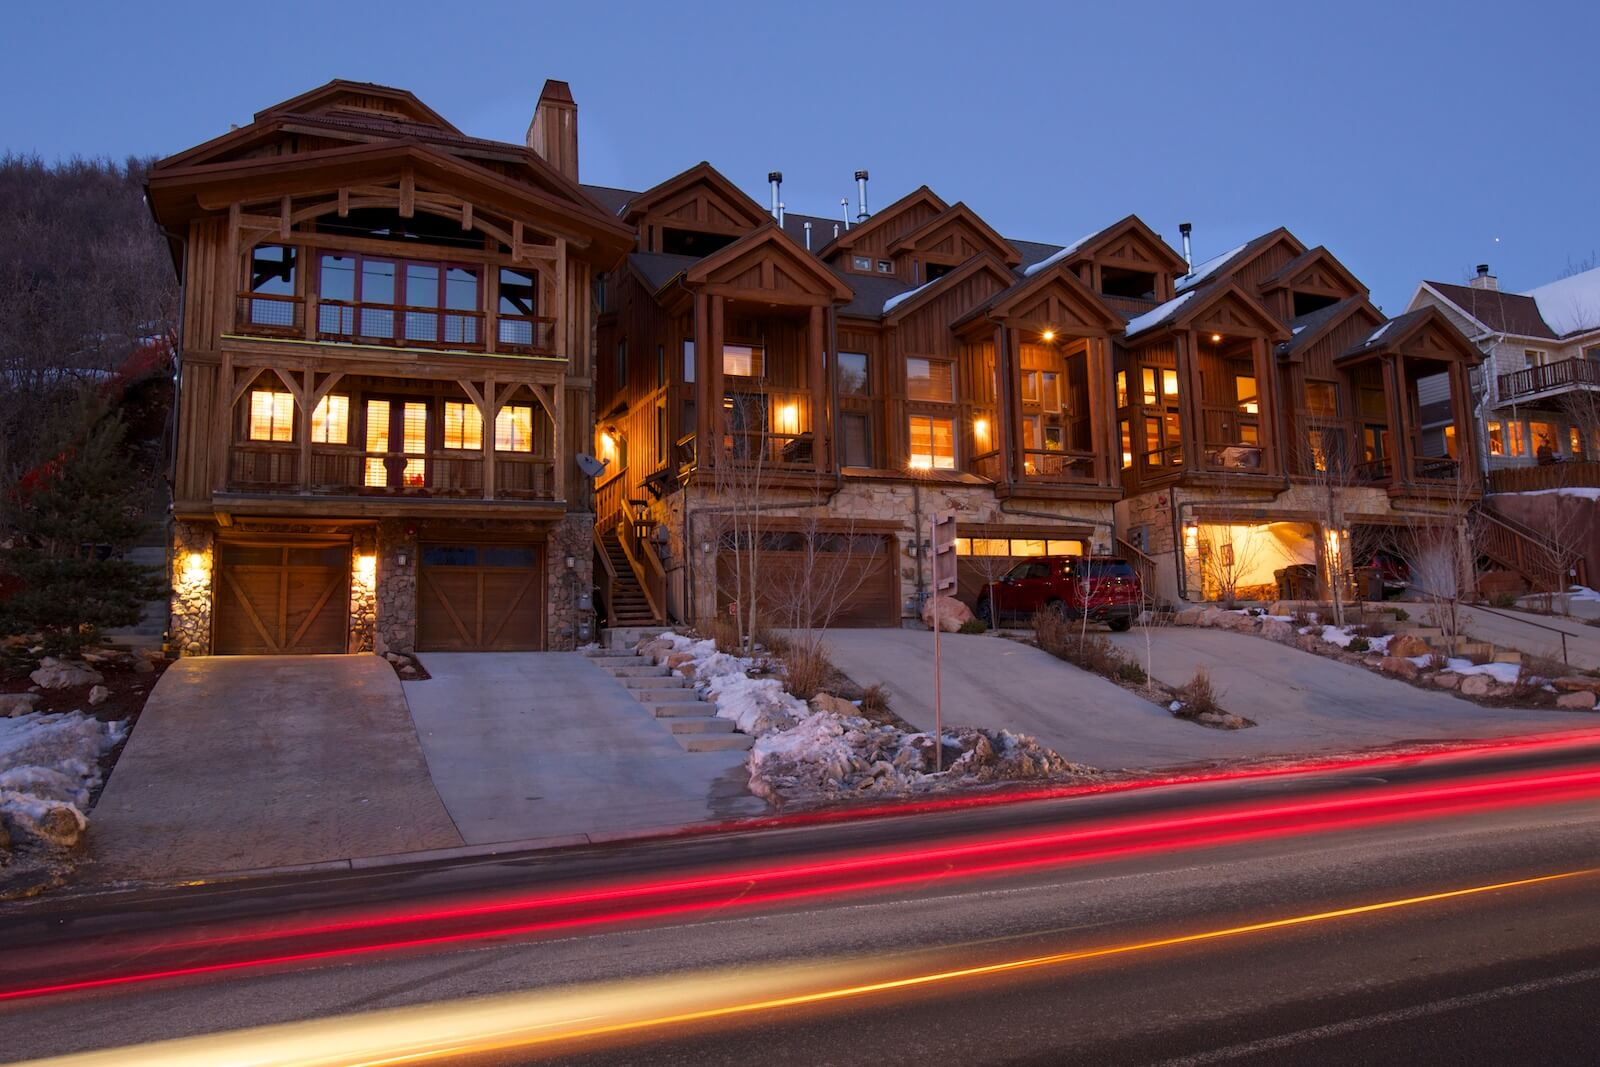 Equity Residences: 4BR – Park City, Utah